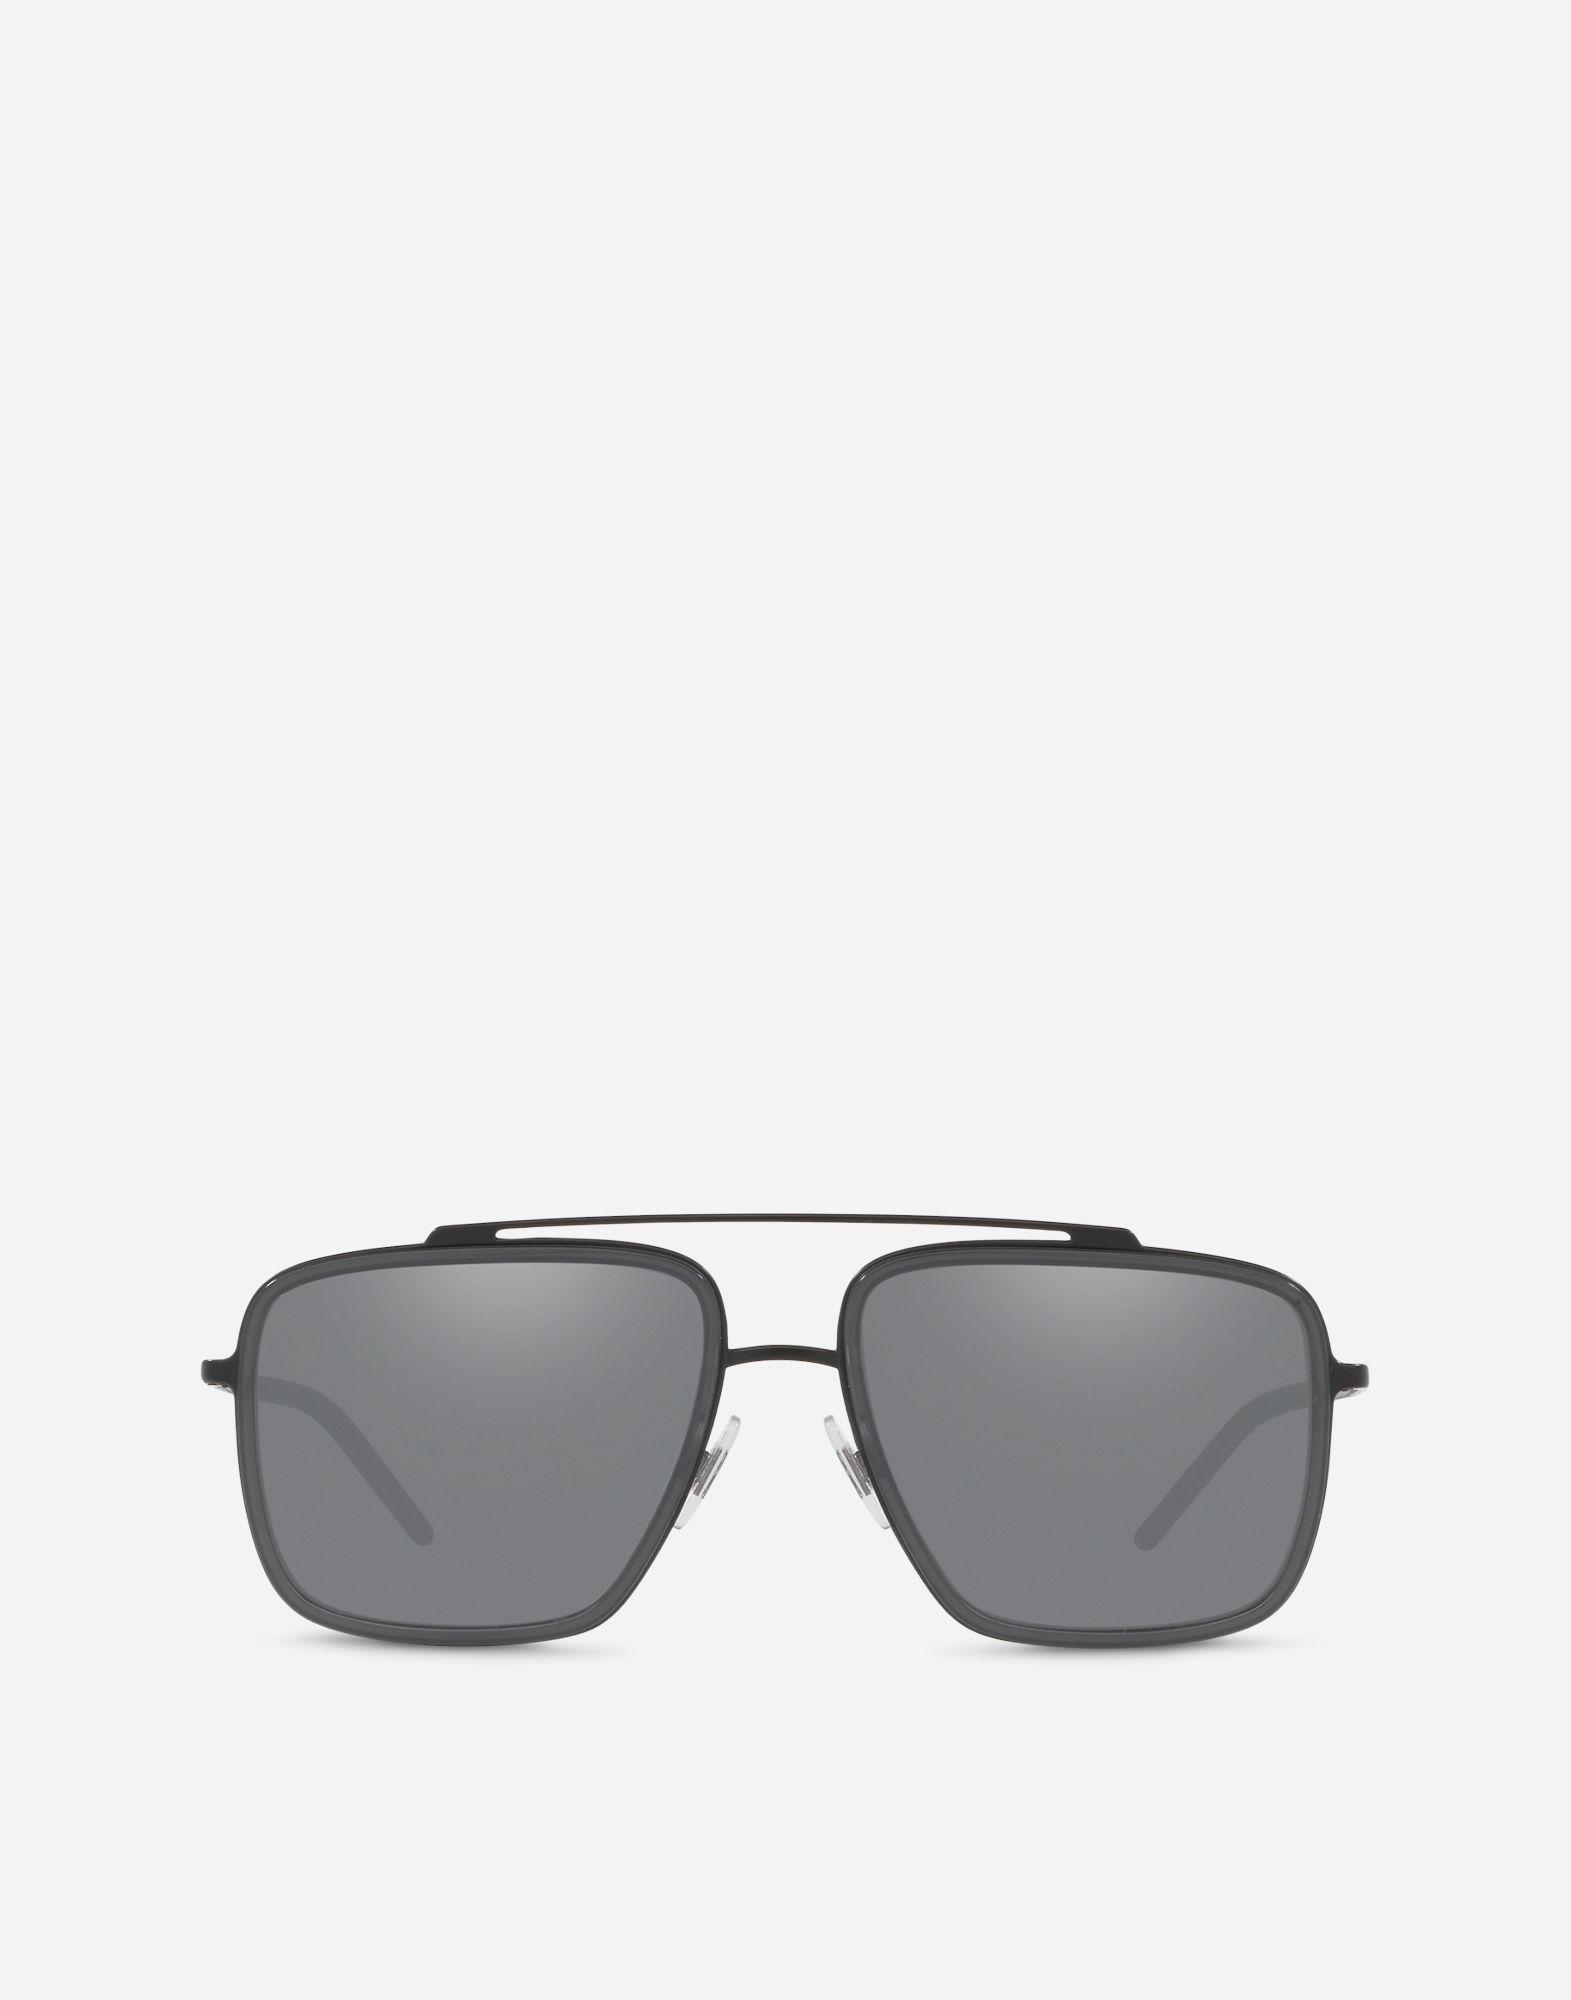 6a662416077b8 Dolce   Gabbana Madison Sunglasses in Gray for Men - Lyst